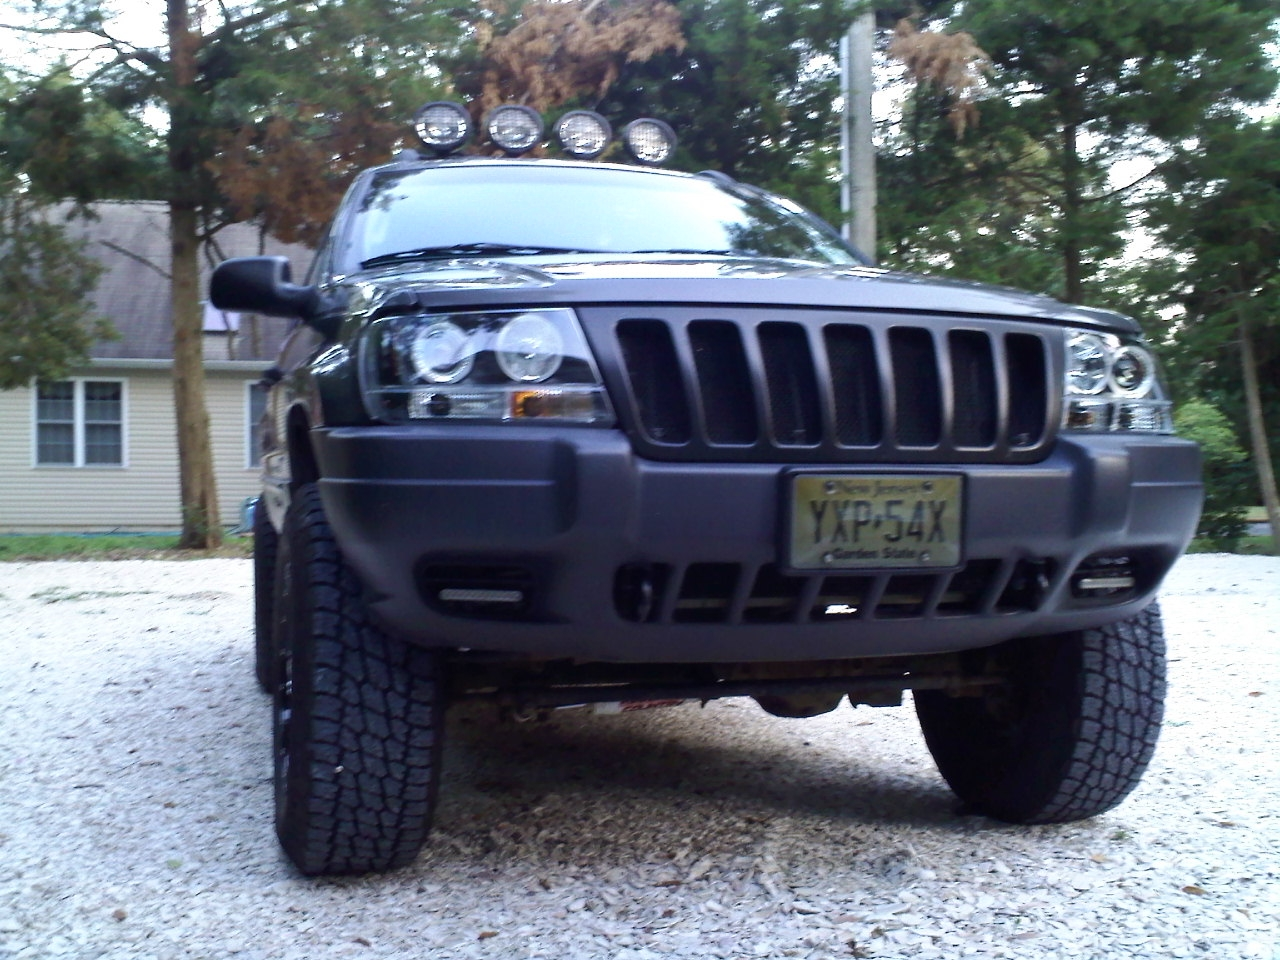 xii fuz1on iix 2003 jeep grand cherokee specs photos modification info at cardomain cardomain